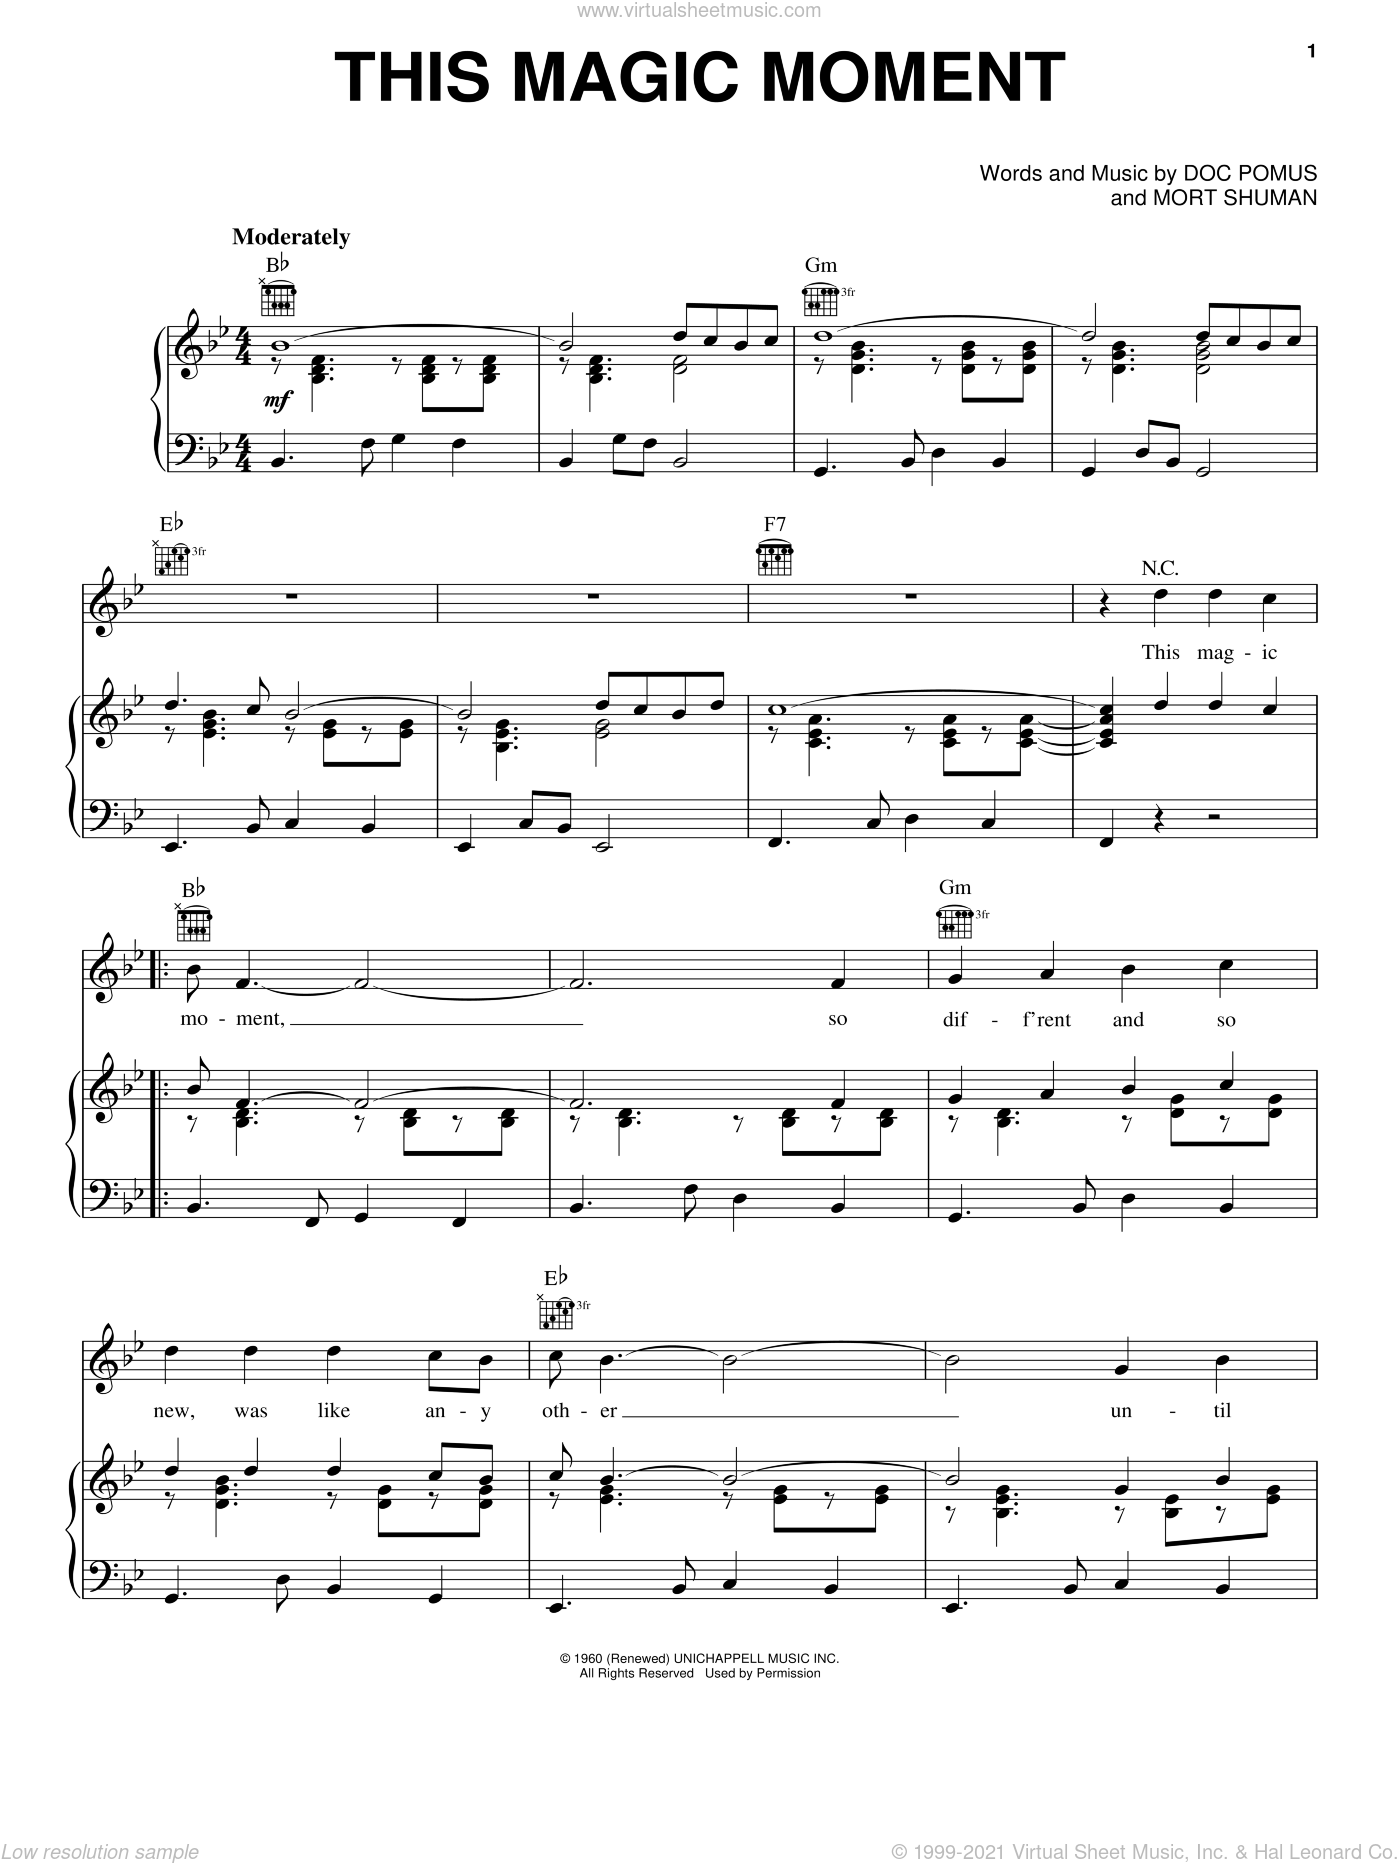 This Magic Moment sheet music for voice, piano or guitar by Jay & The Americans, Doc Pomus, Jerome Pomus and Mort Shuman, intermediate skill level